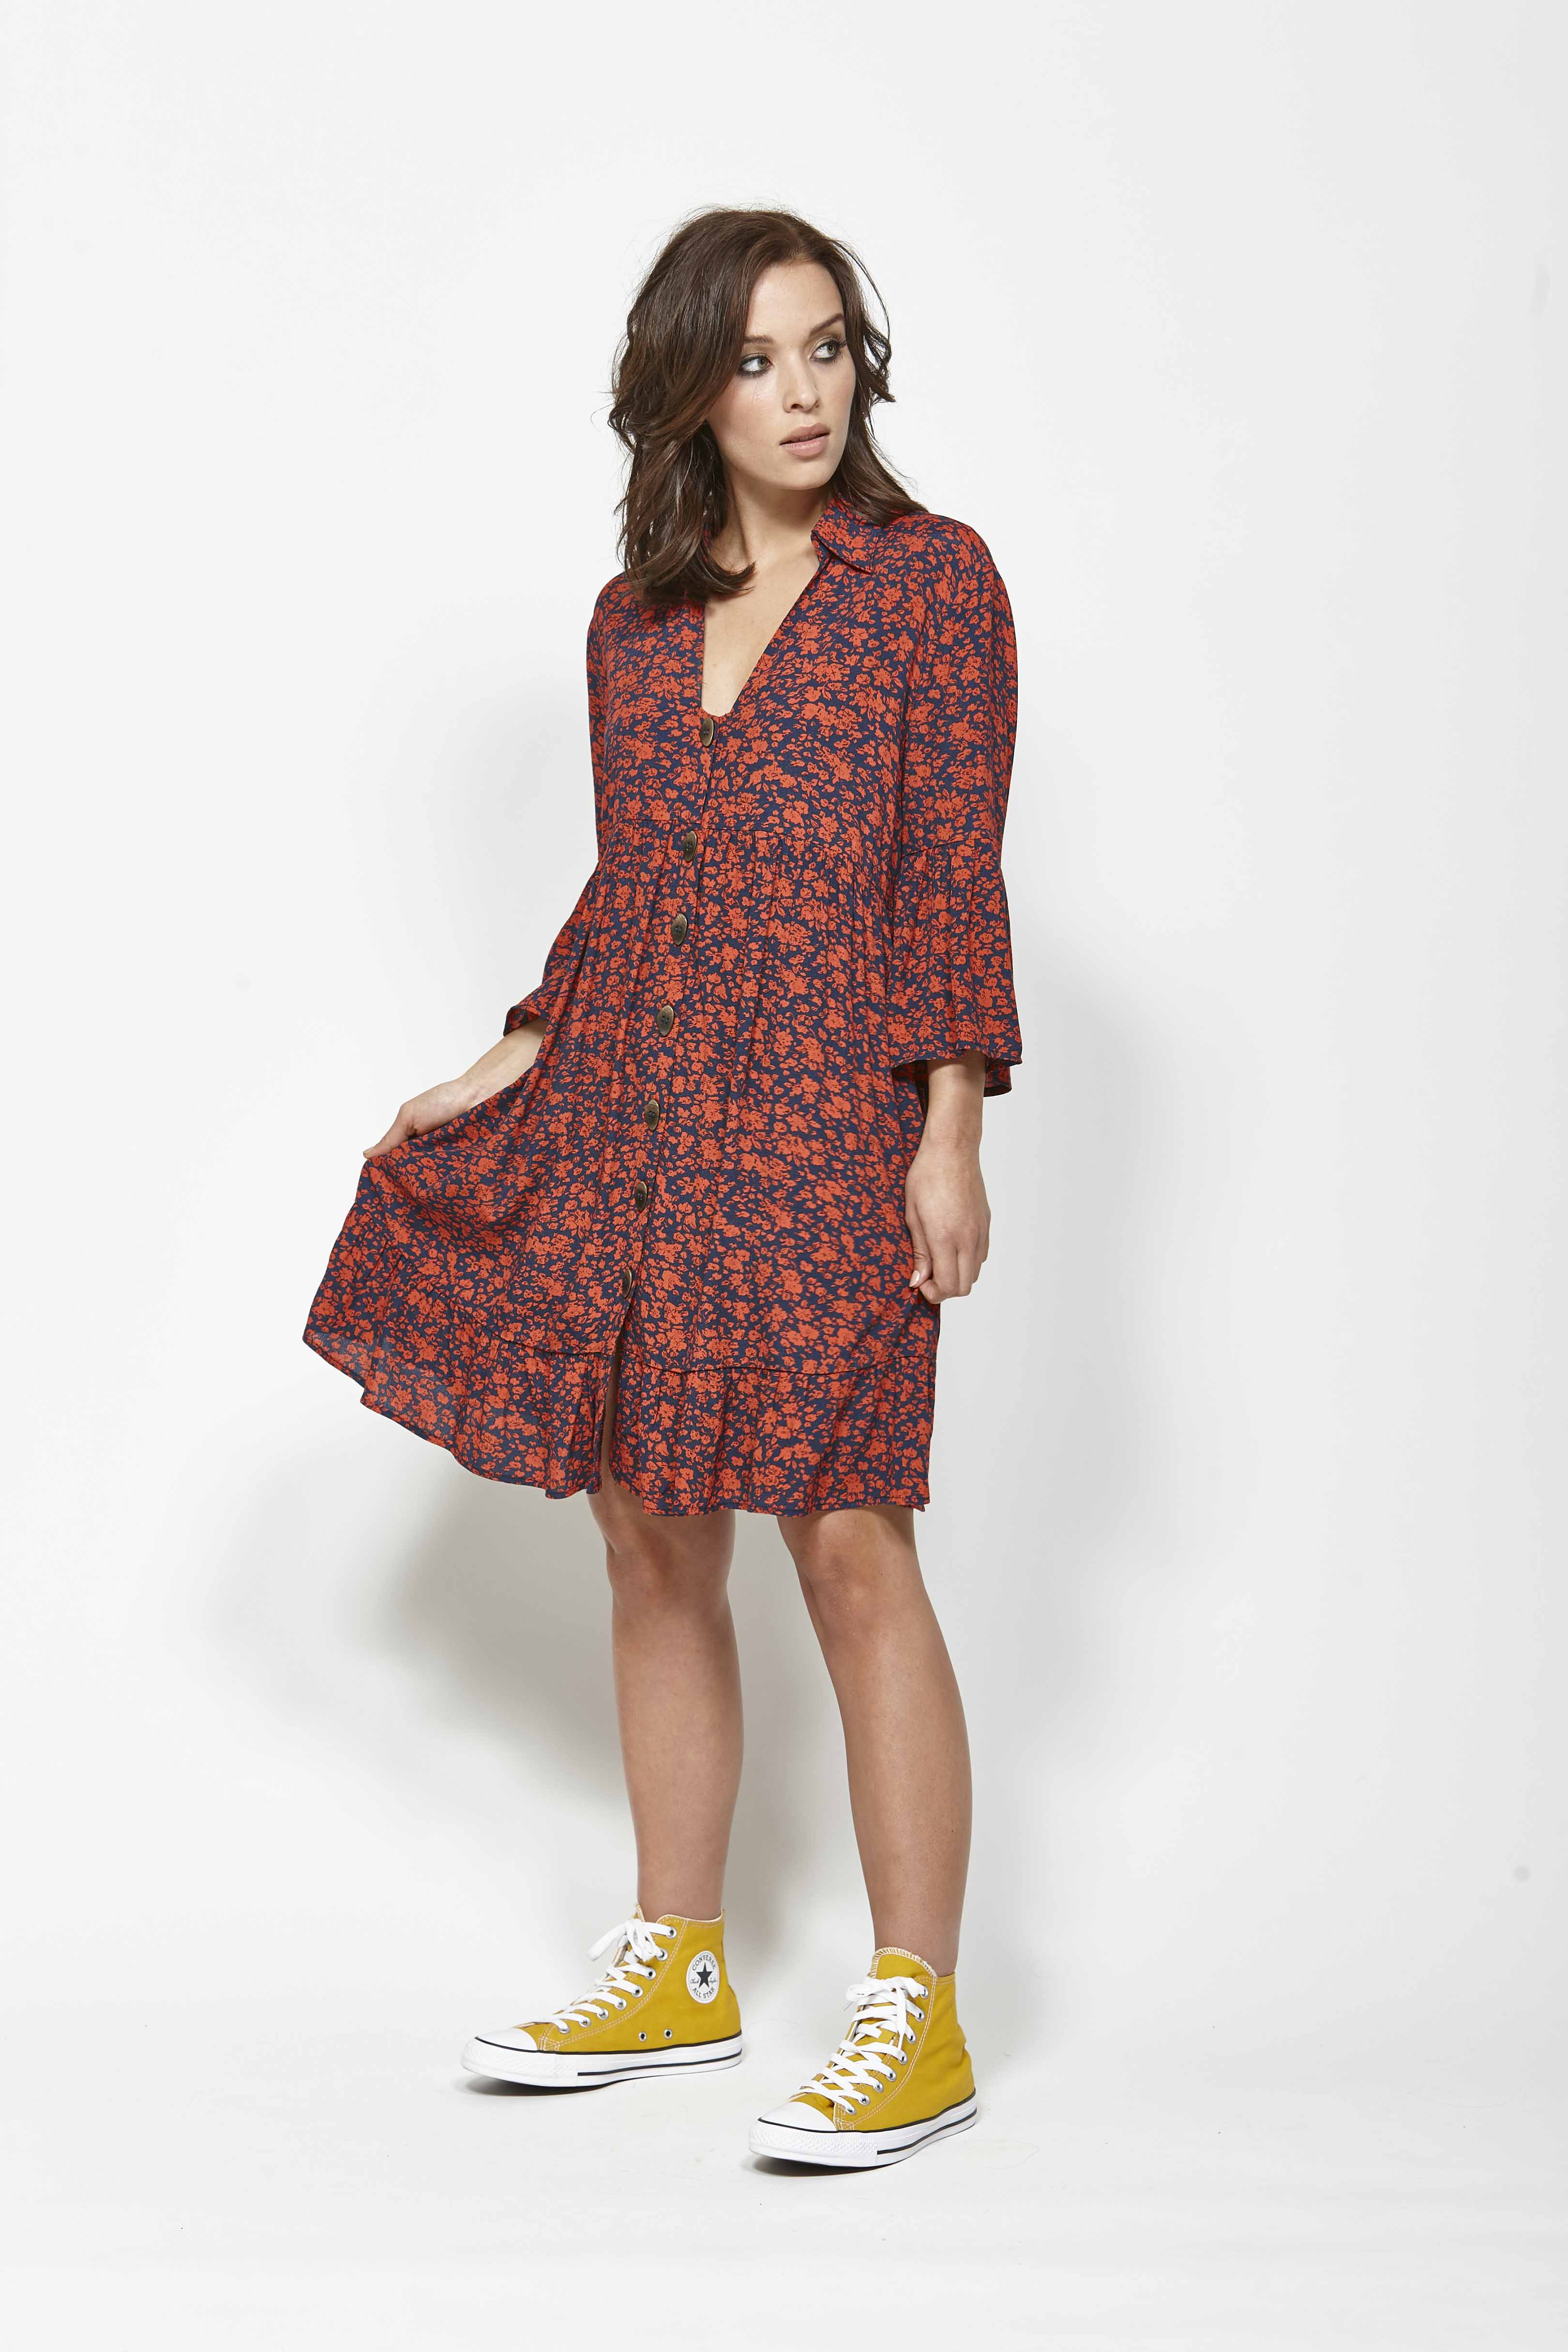 LEO+BE LB1366 Intermission Dress, RRP$168.00